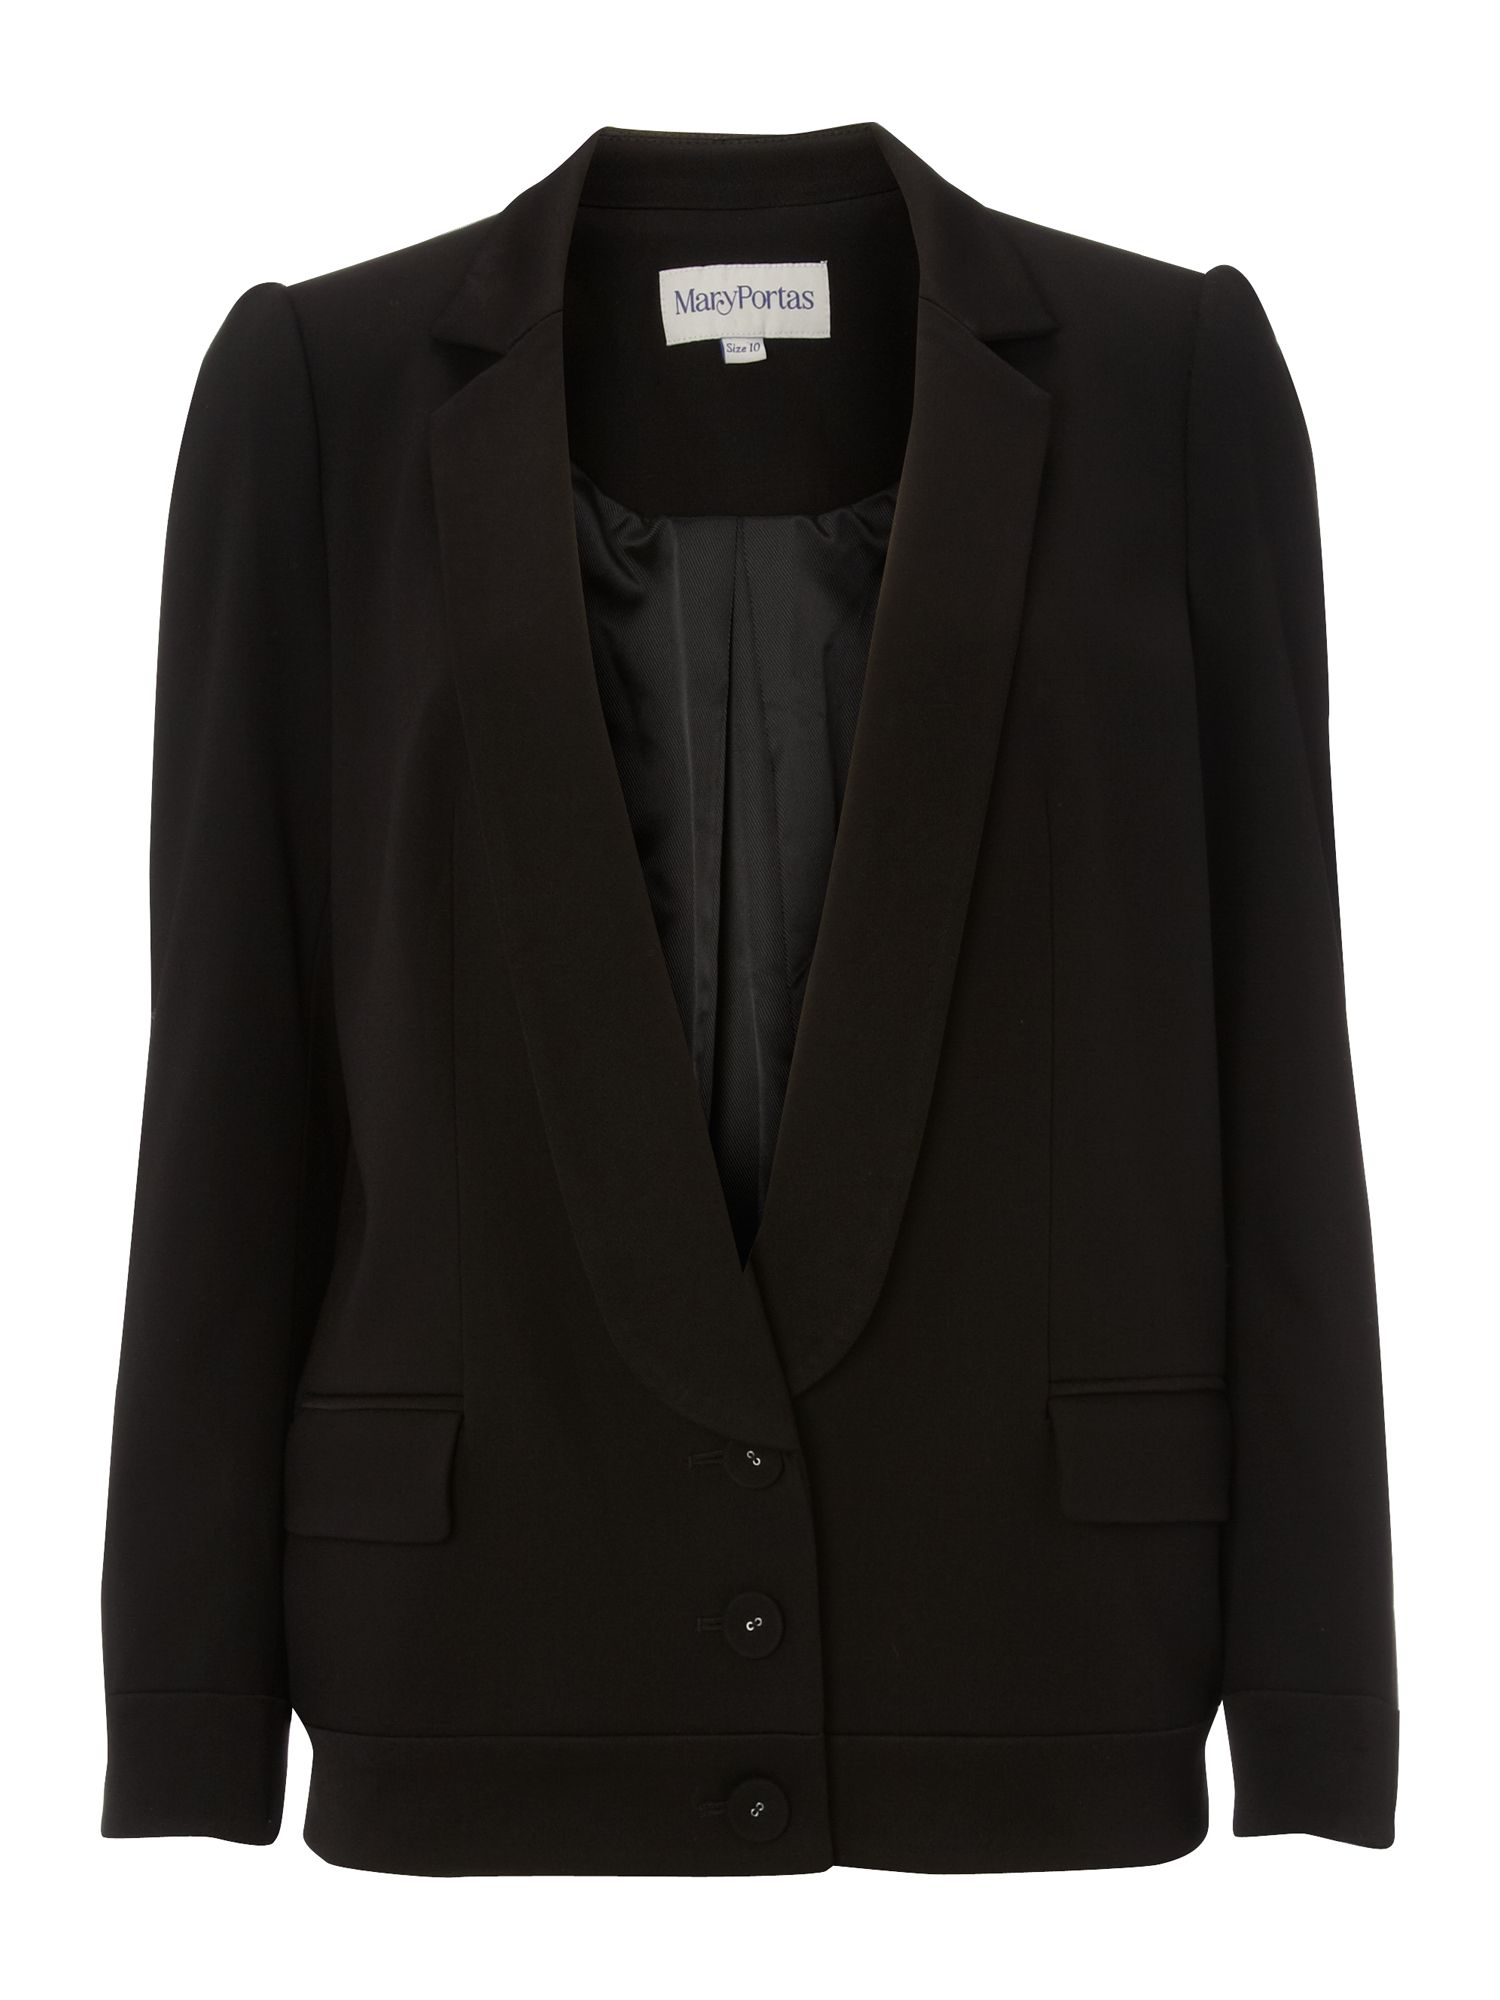 The Perfect New Tuxedo Jacket